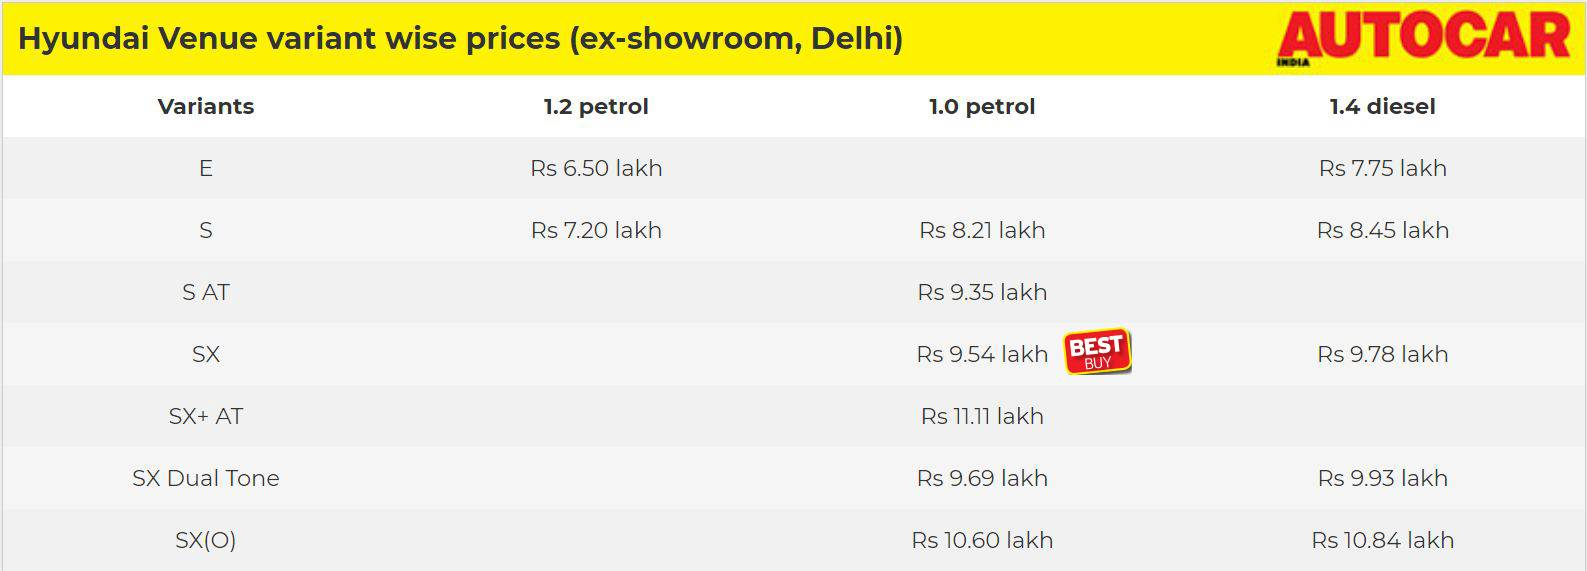 Hyundai Venue petrol or diesel? S or SX? We tell you which